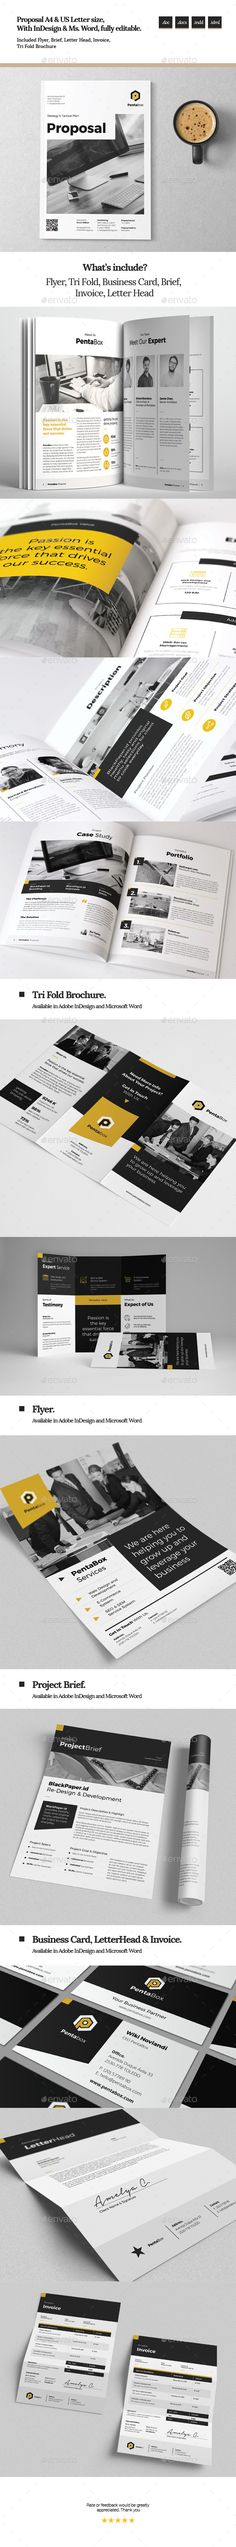 Simple 4 Pages Proposal for Web Developers - Proposals \ Invoices - microsoft office proposal templates